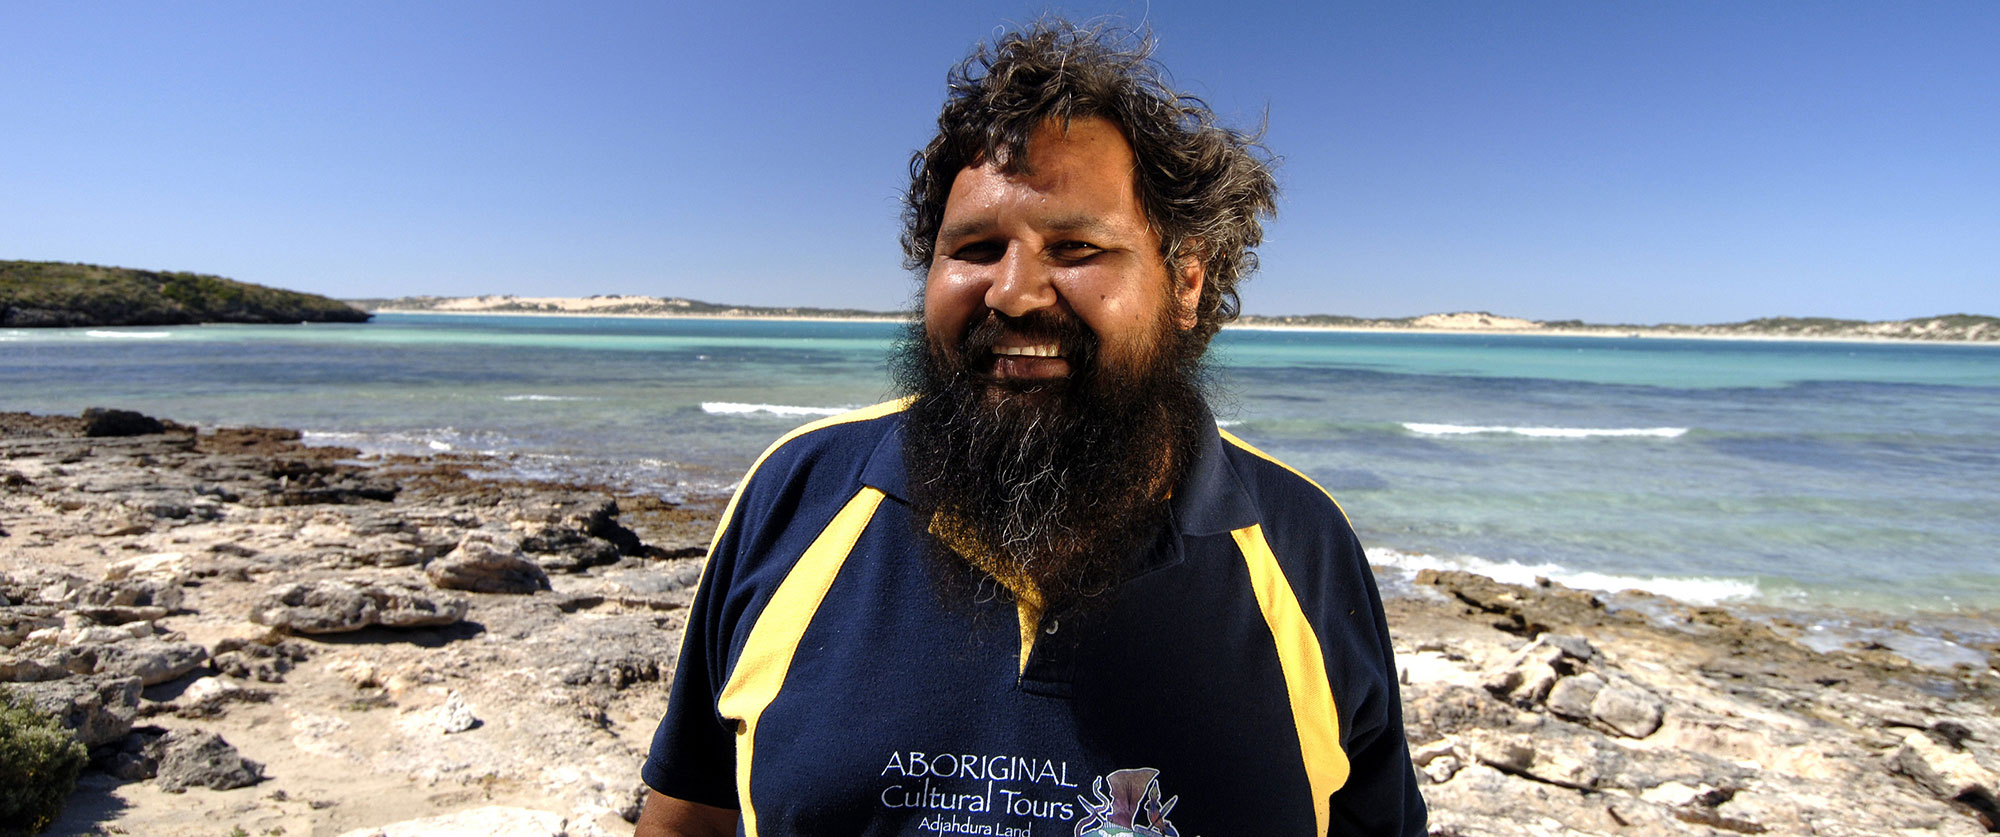 Australia Culture Vacations - Aboriginal Cultural Tours